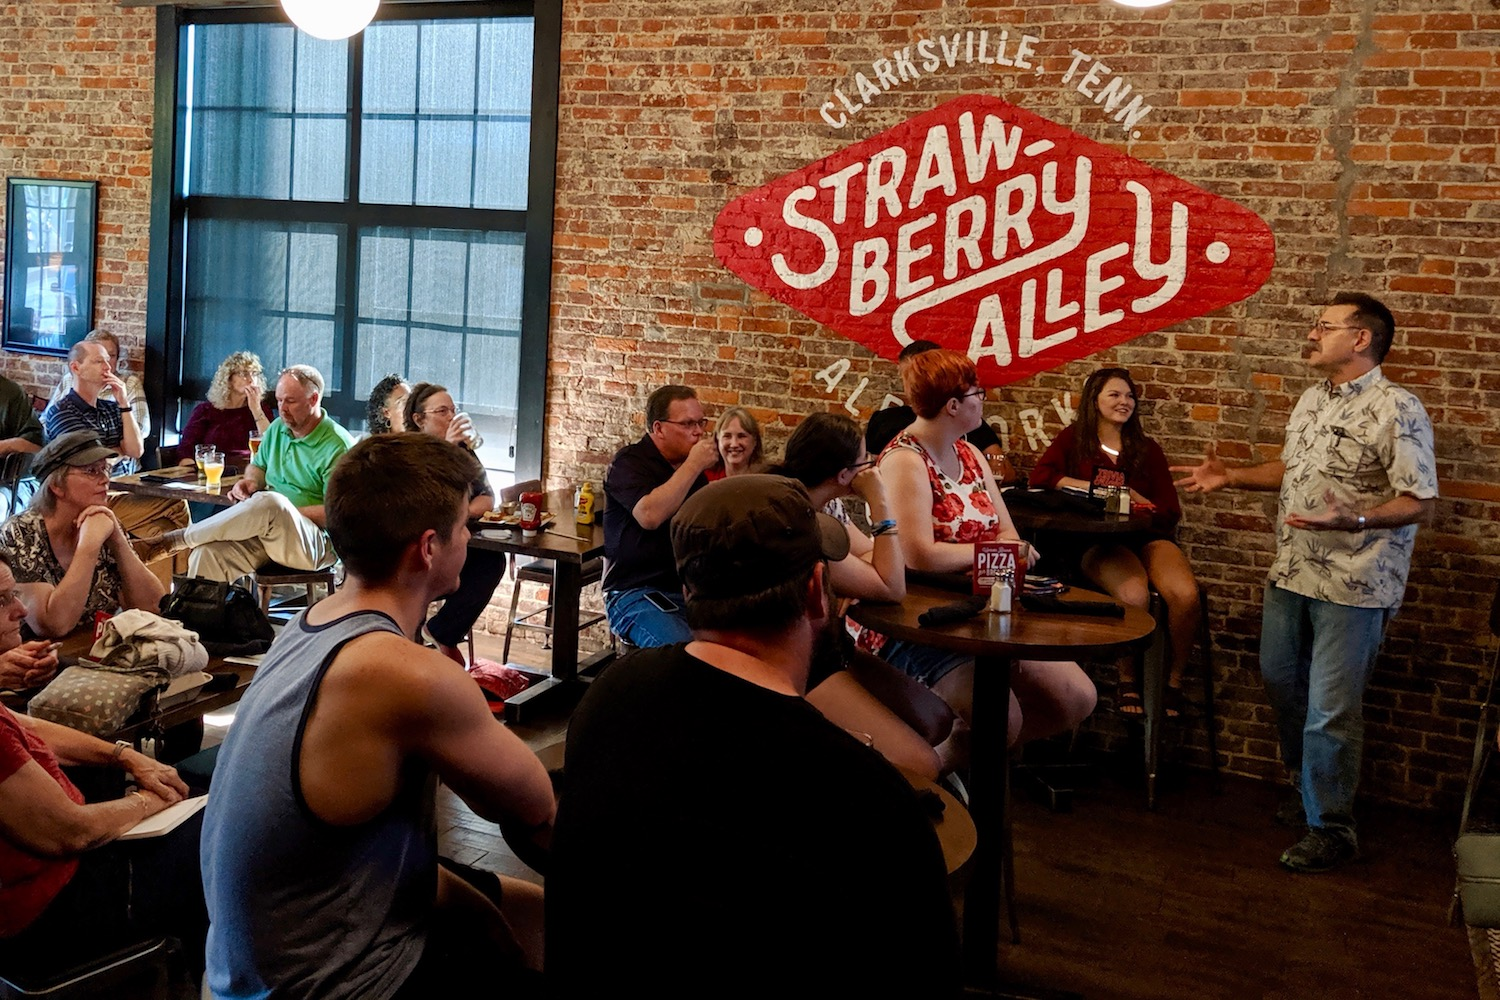 Austin Peay State University's Science on Tap – which is set to return 5:30 p.m. Tuesday, Nov. 5, at Strawberry Alley Ale Works – is adding an important element to November's event.